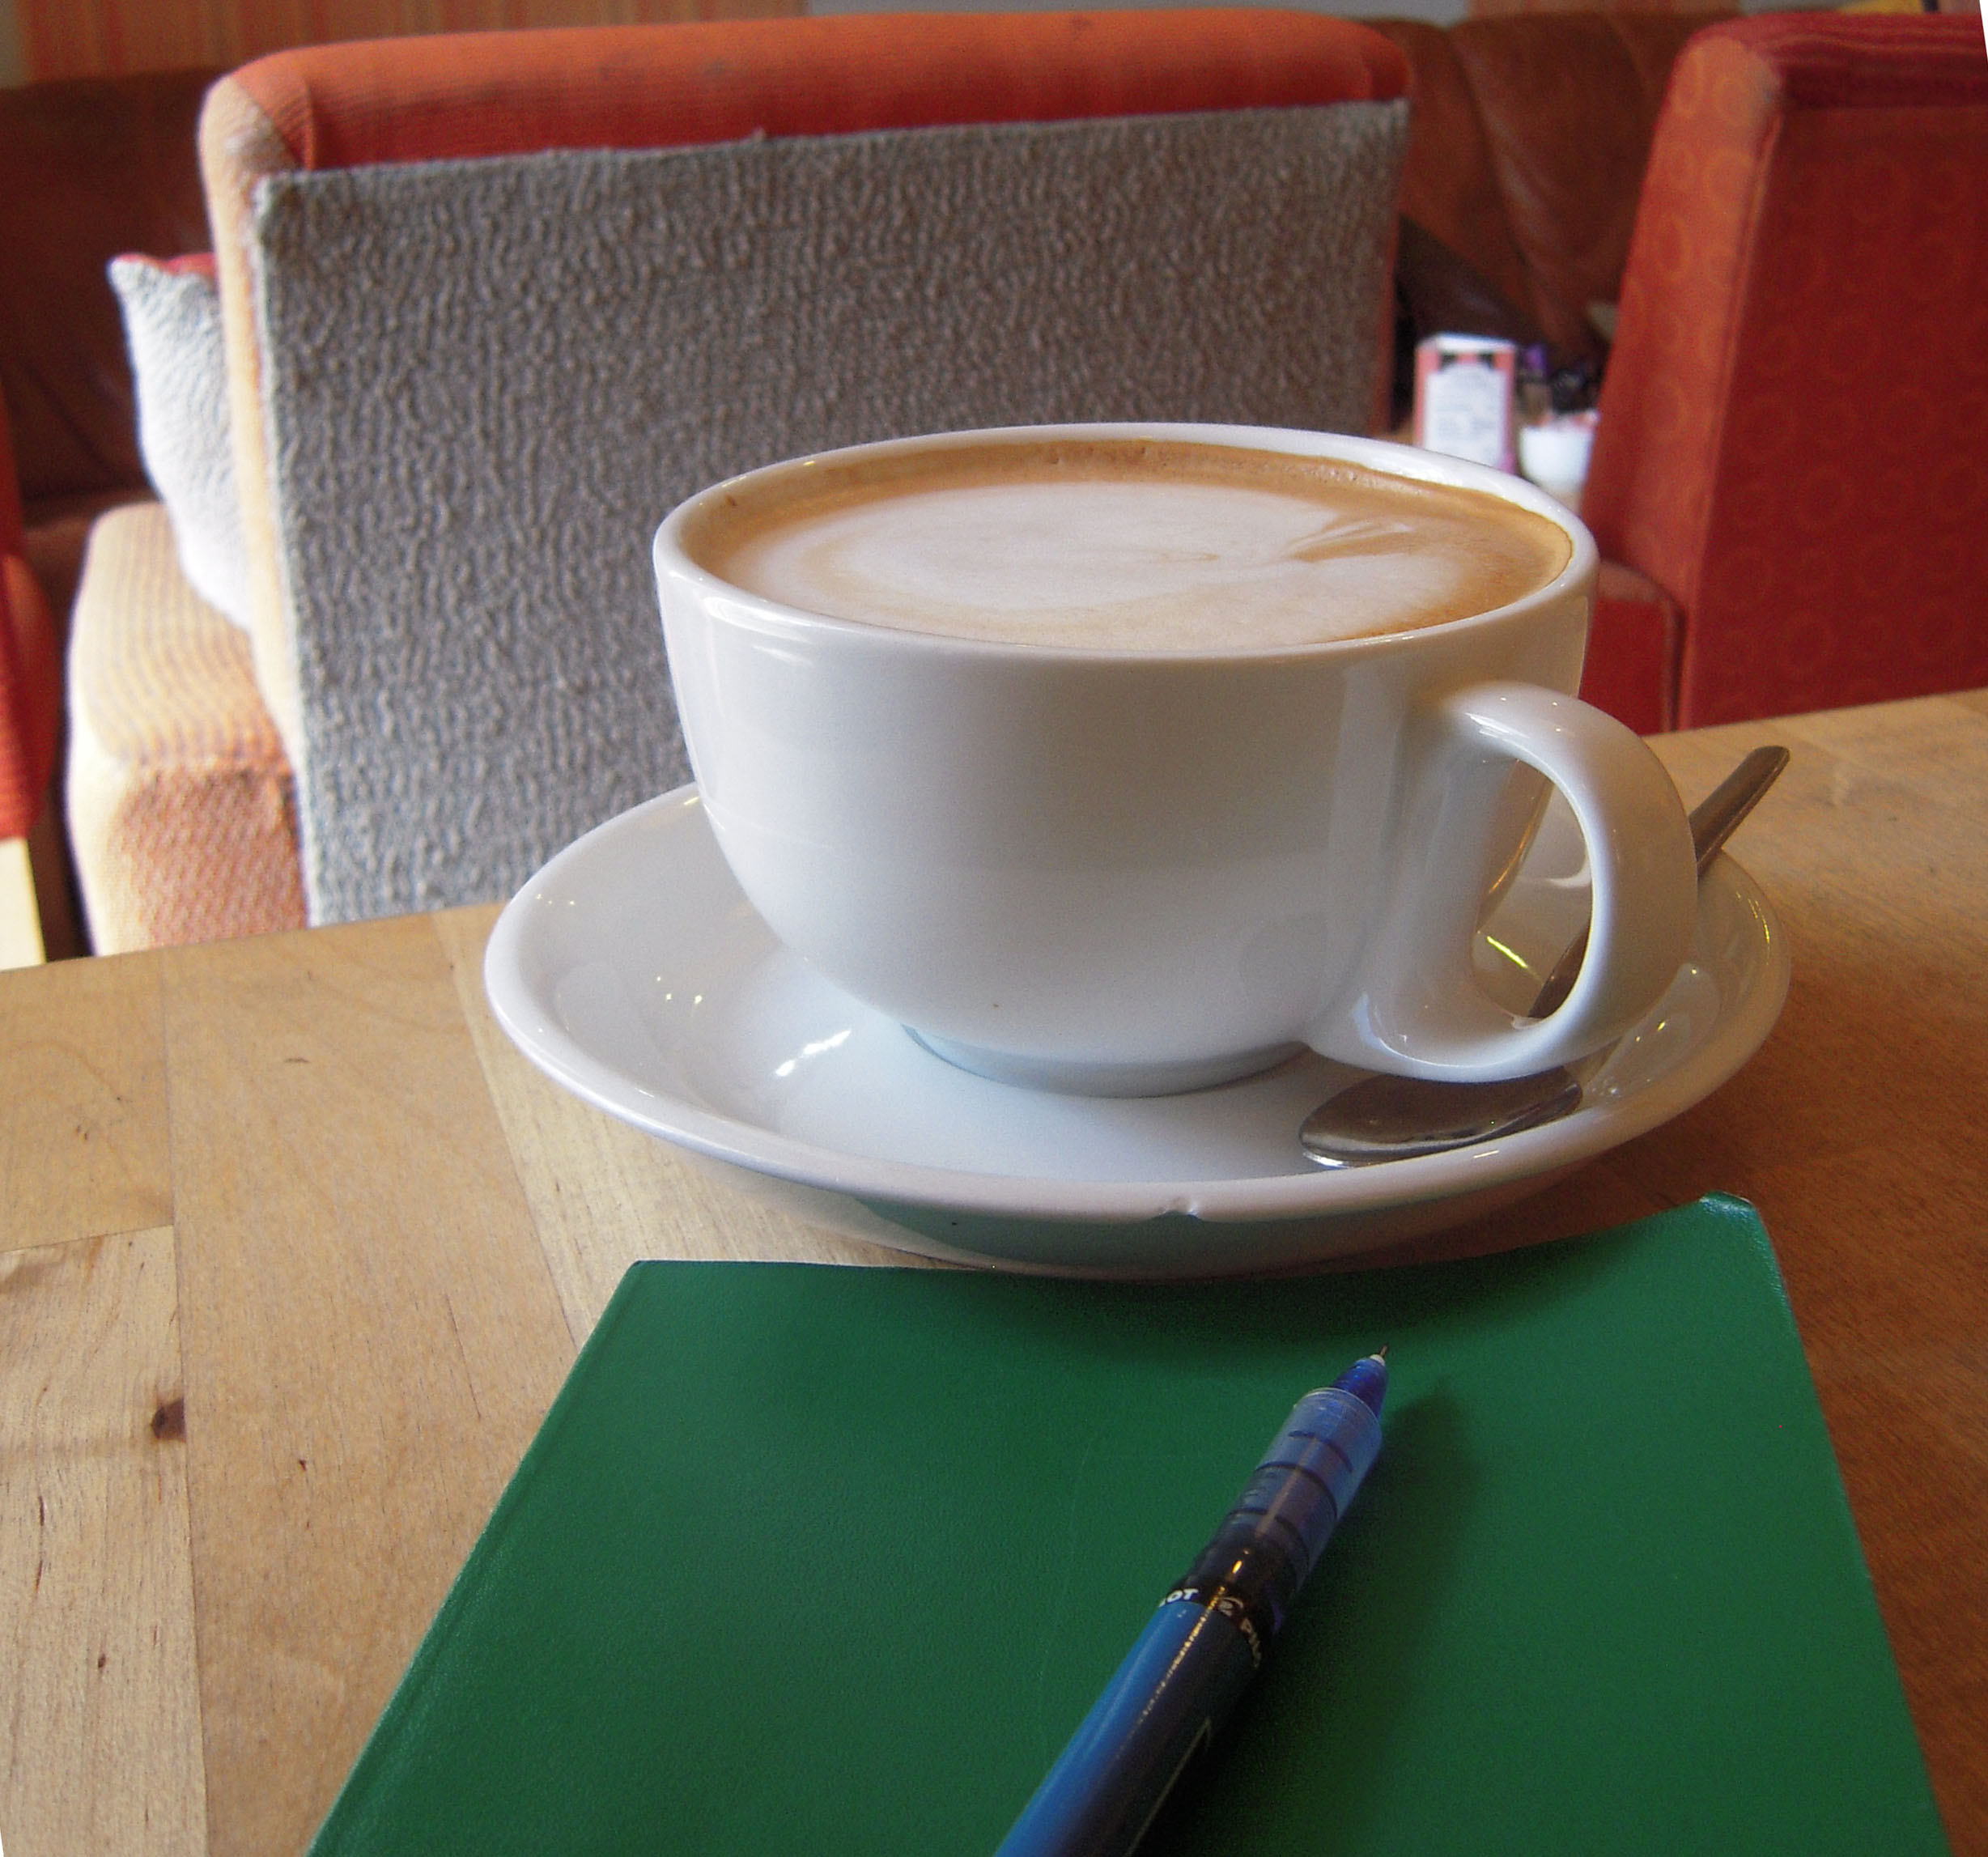 Journaling & lattes are two of my favorite things!